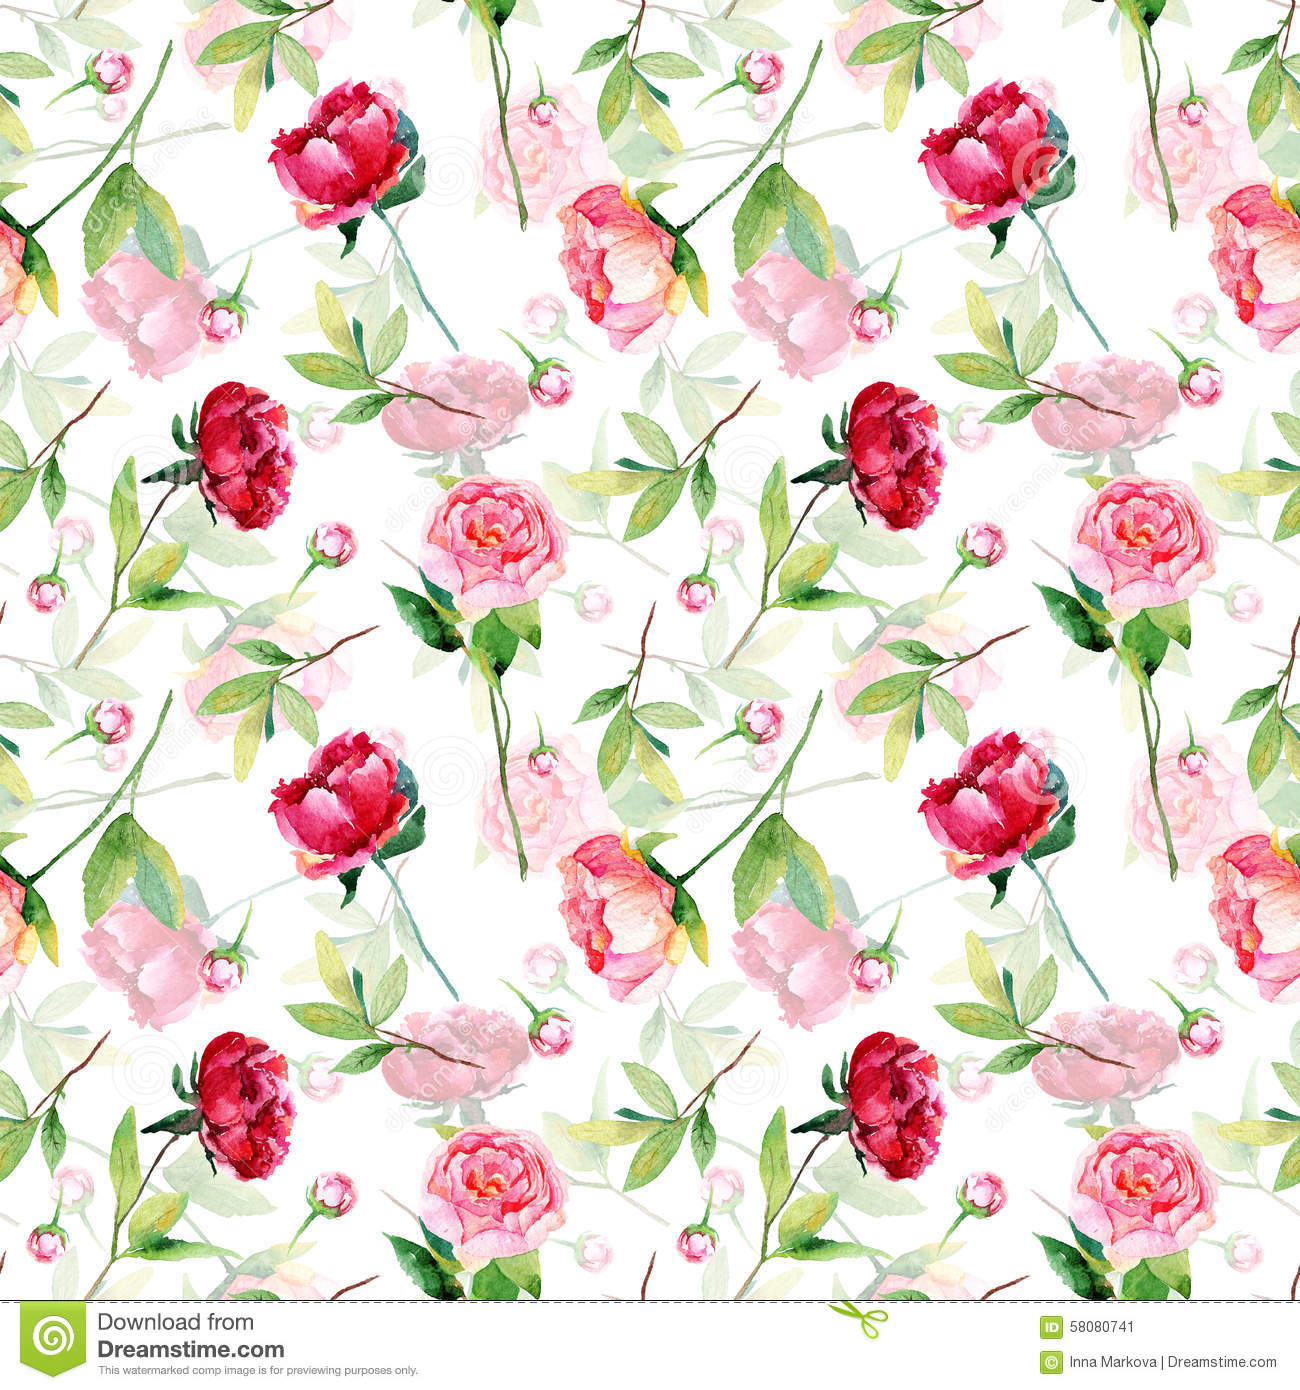 Flower gift wrapping paper romeondinez flower gift wrapping paper mightylinksfo